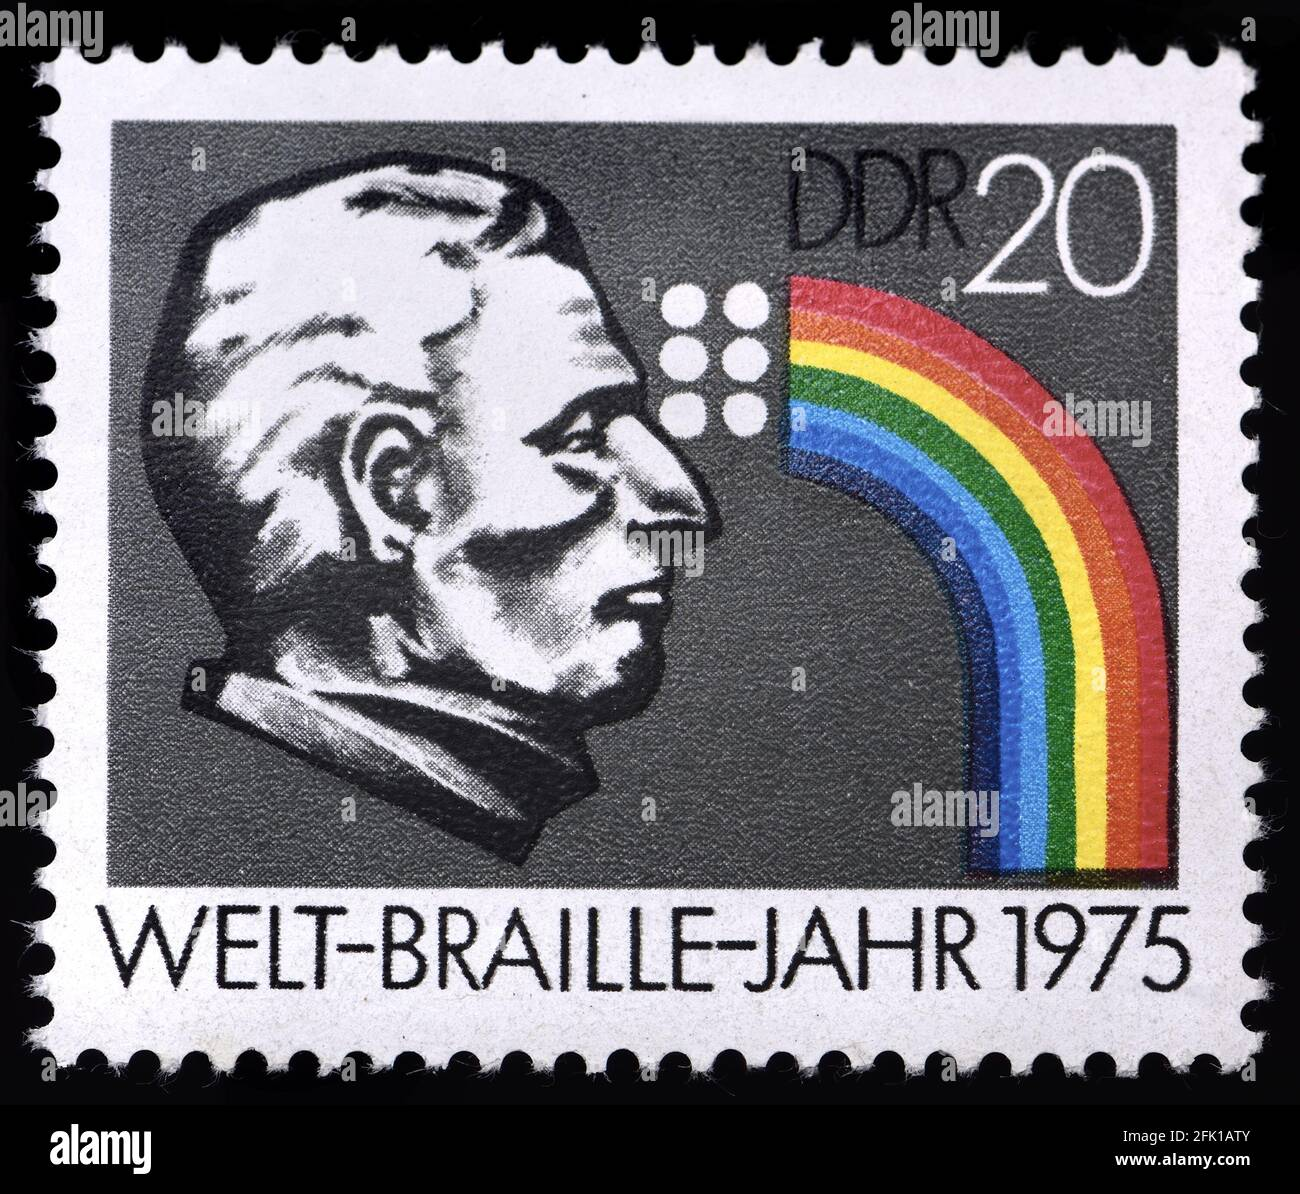 East German postage stamp (1975)  : World Braille Year 1975 Stock Photo